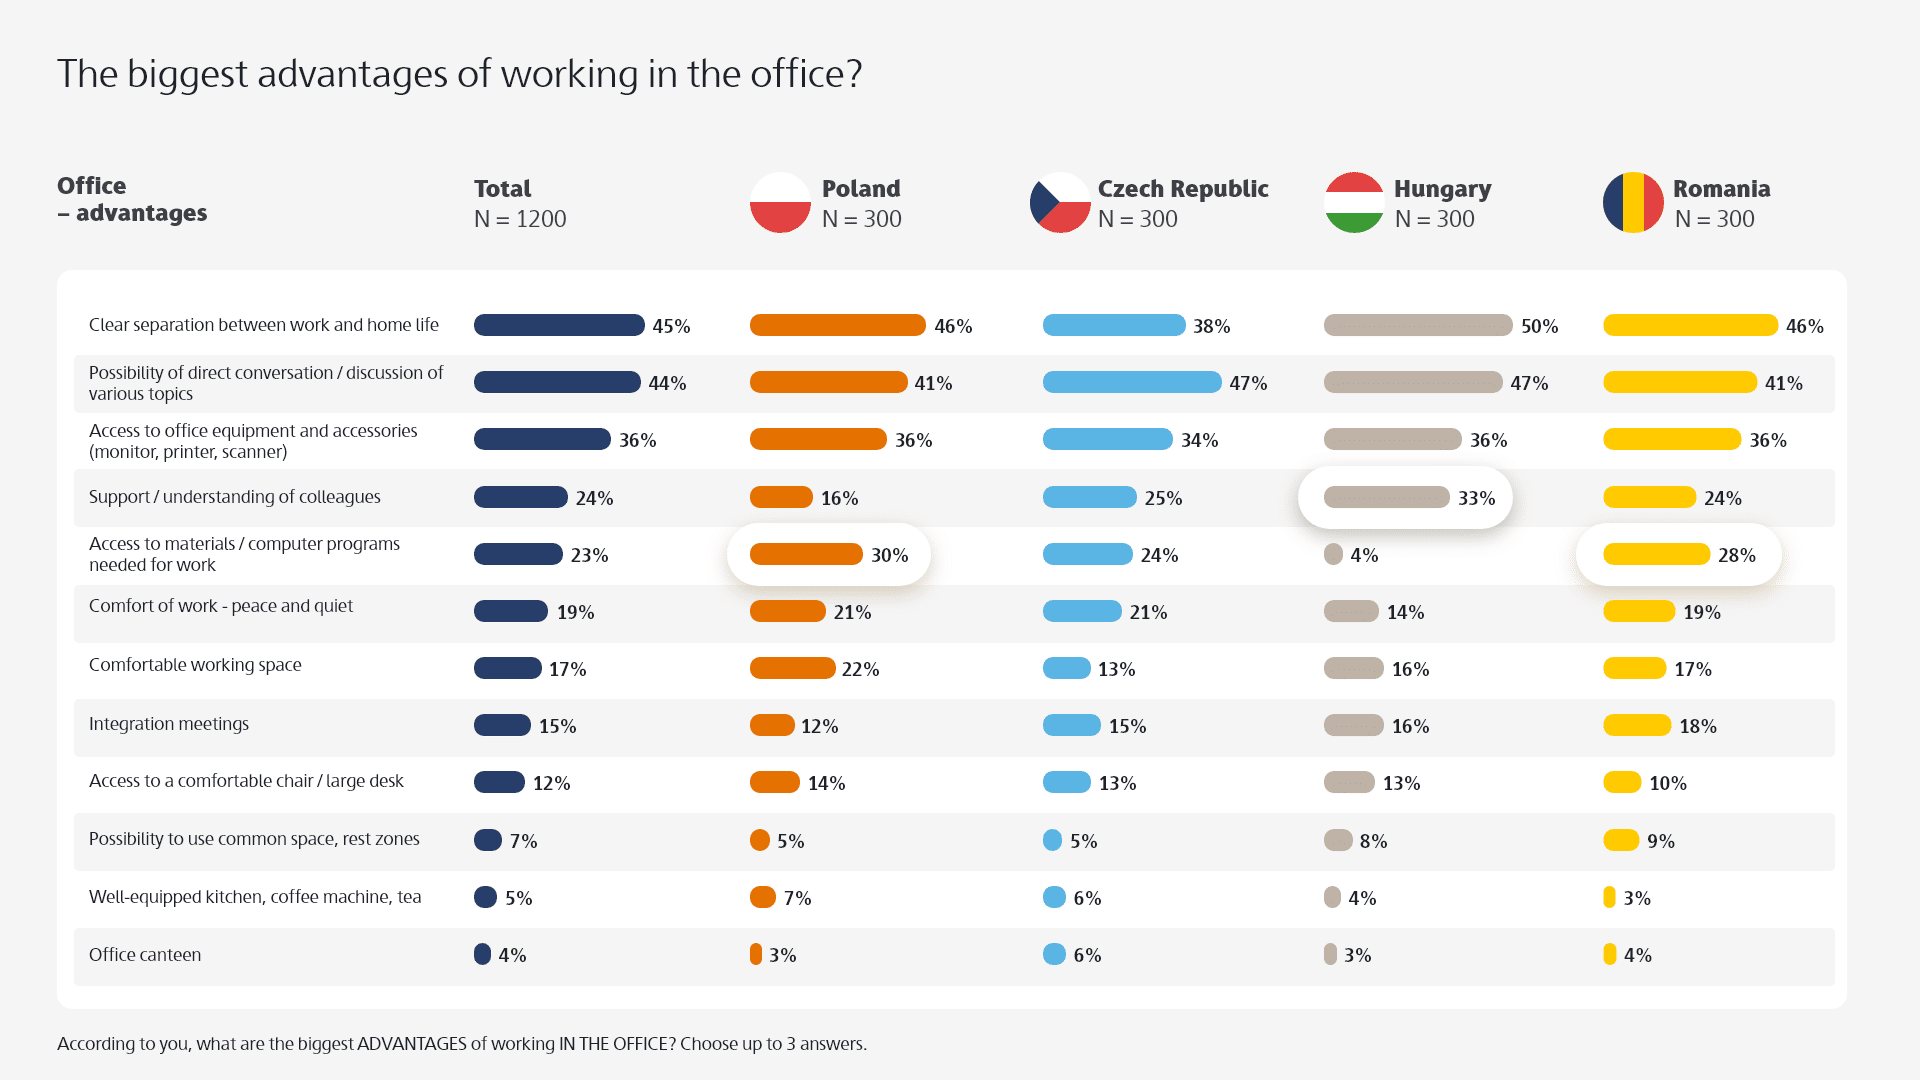 The biggest advantages of working in the office